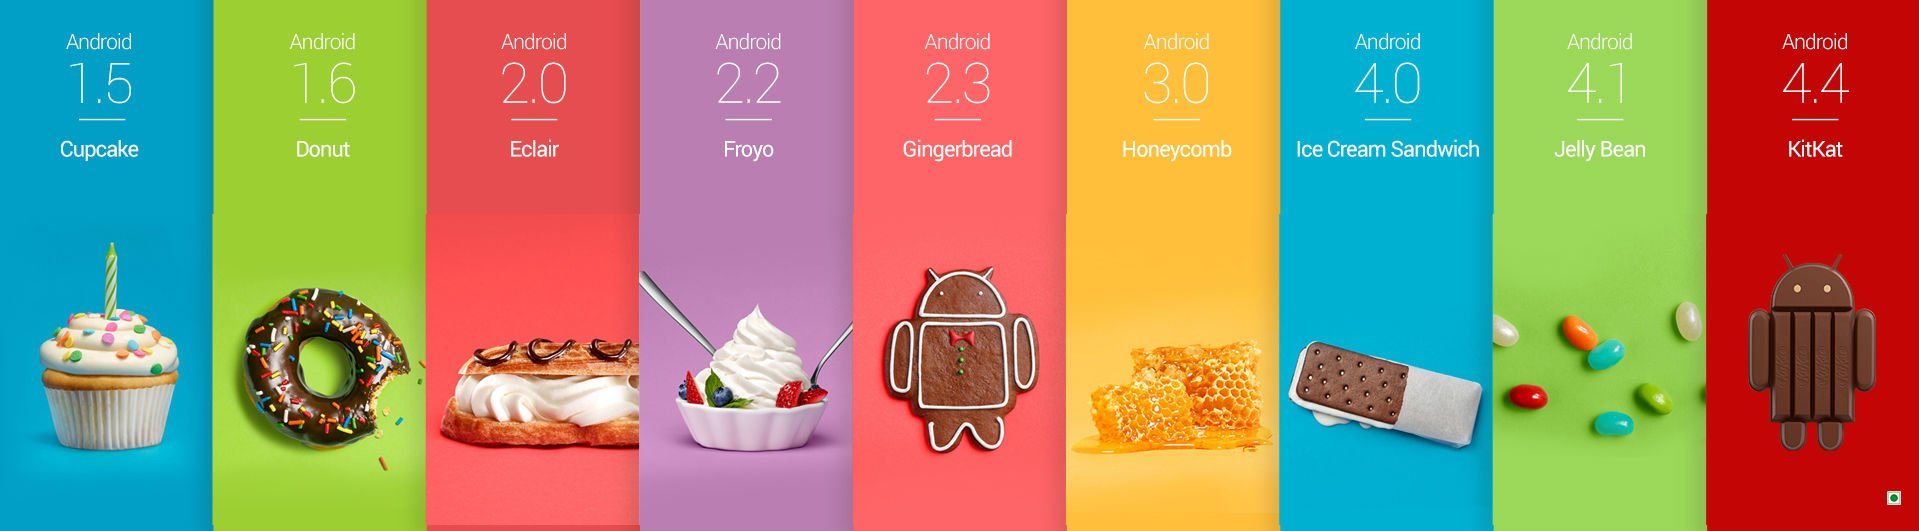 Android operating system version history